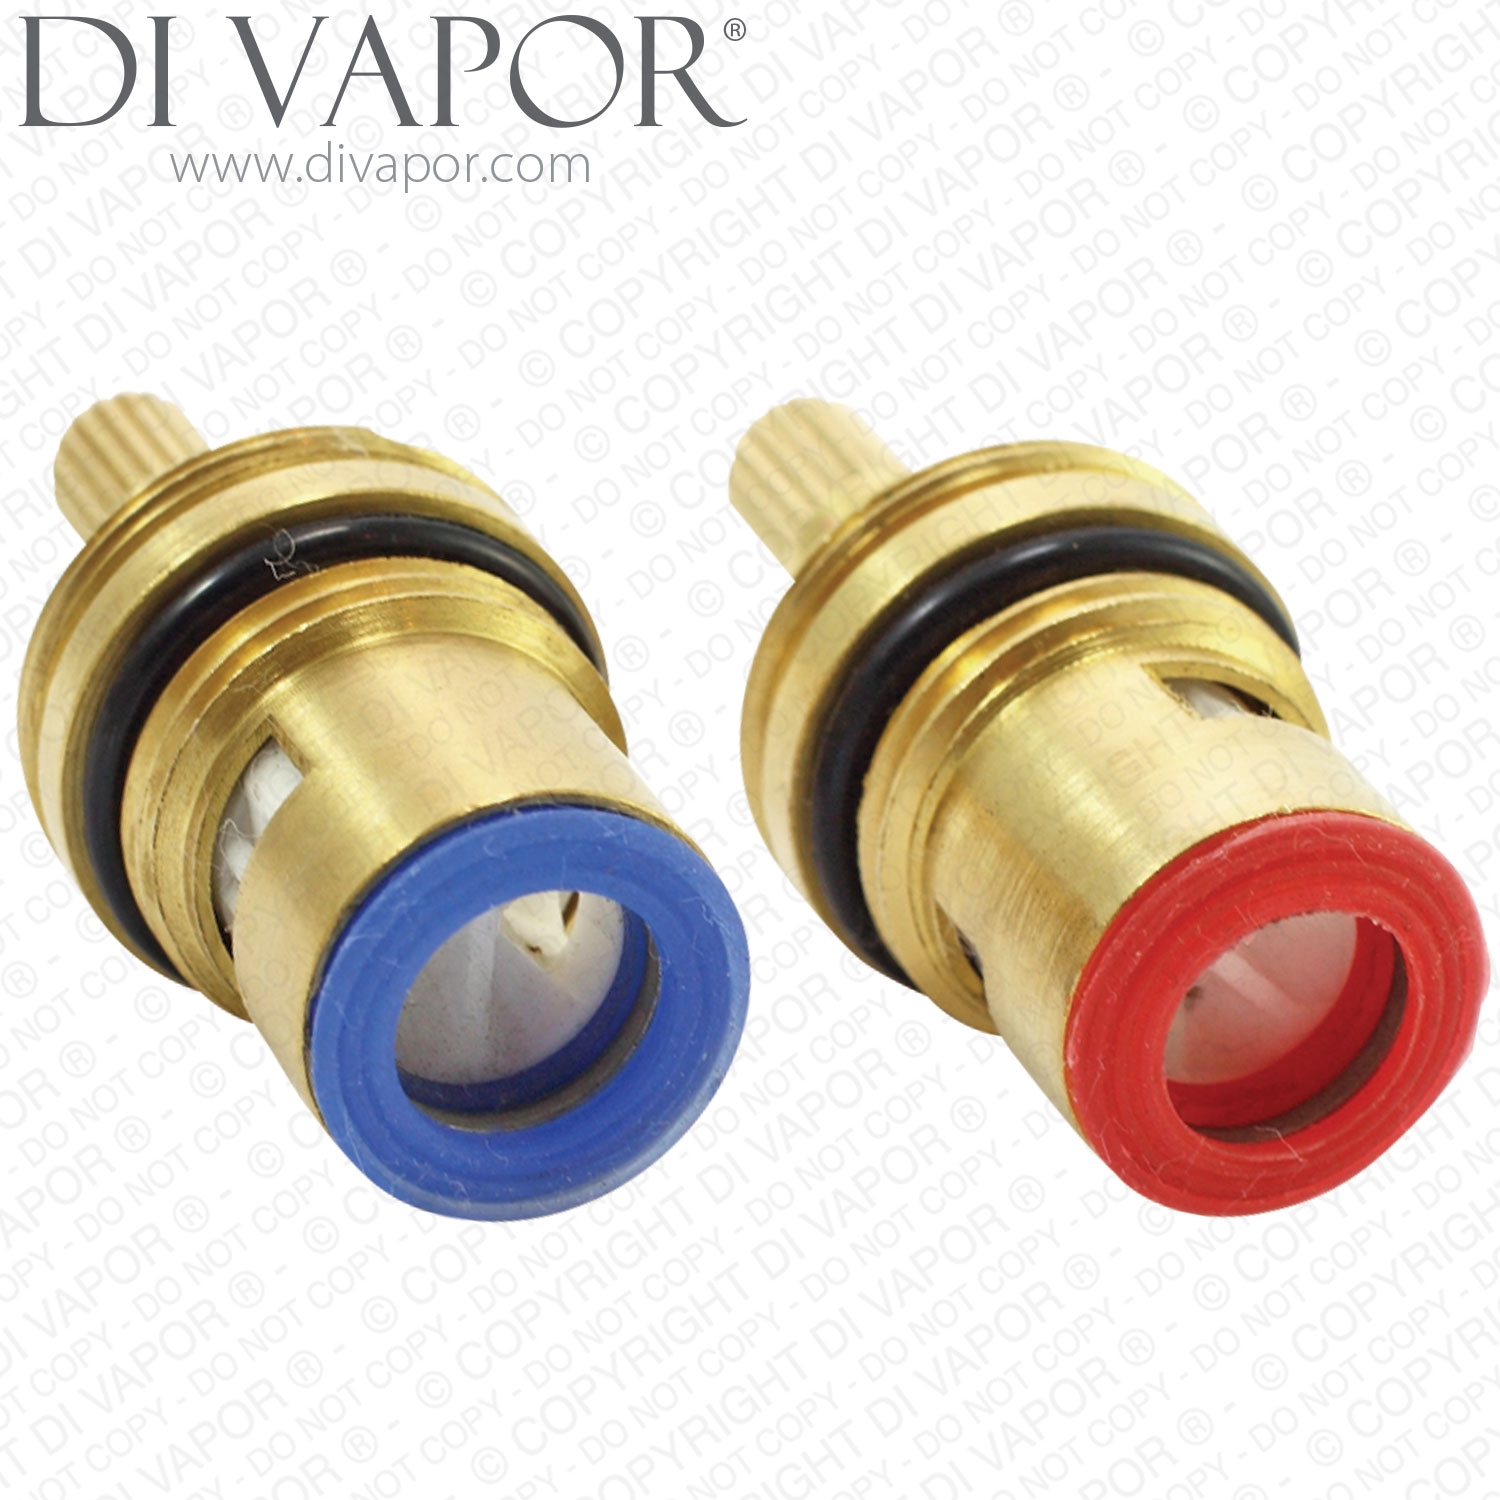 Two 1 2 Quot Quarter Turn Ceramic Disc Tap Cartridge Replacements Flow Headworks Glands